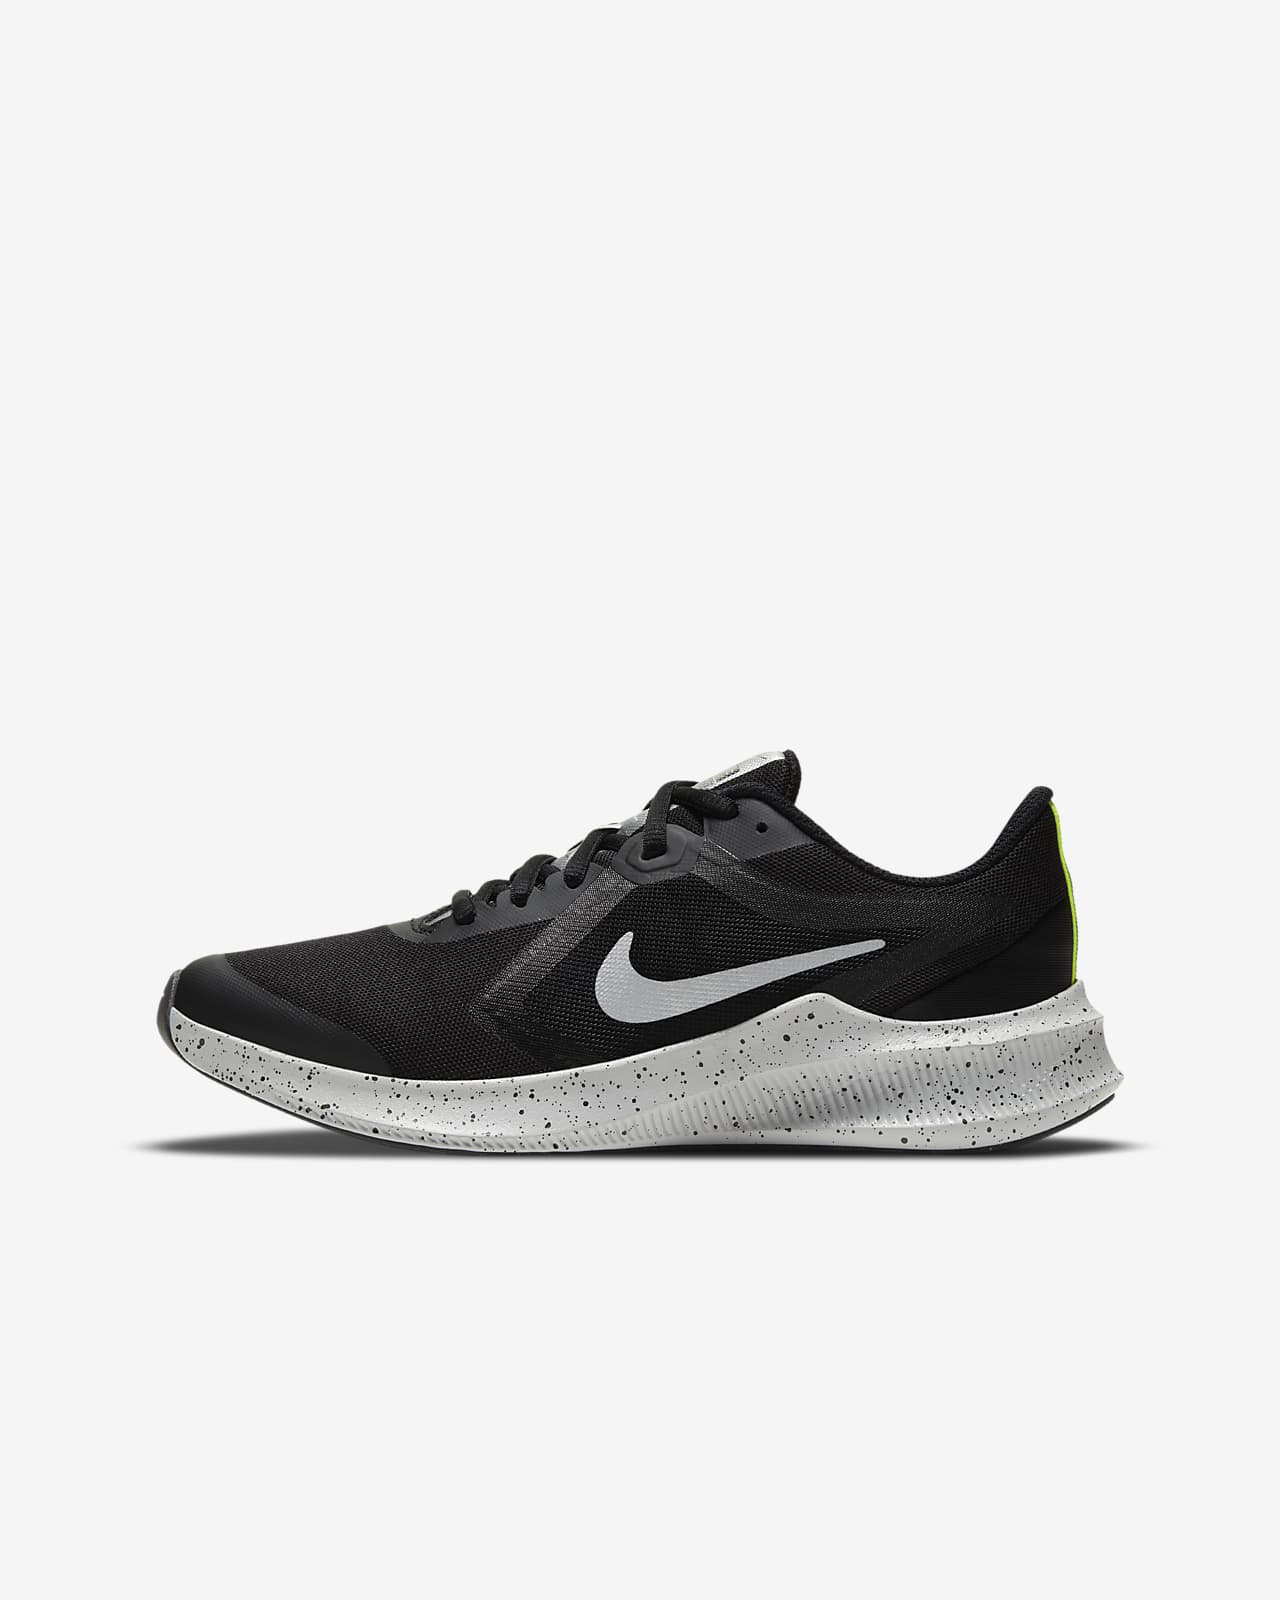 Nike Downshifter 10 VIZ Older Kids' Running Shoe